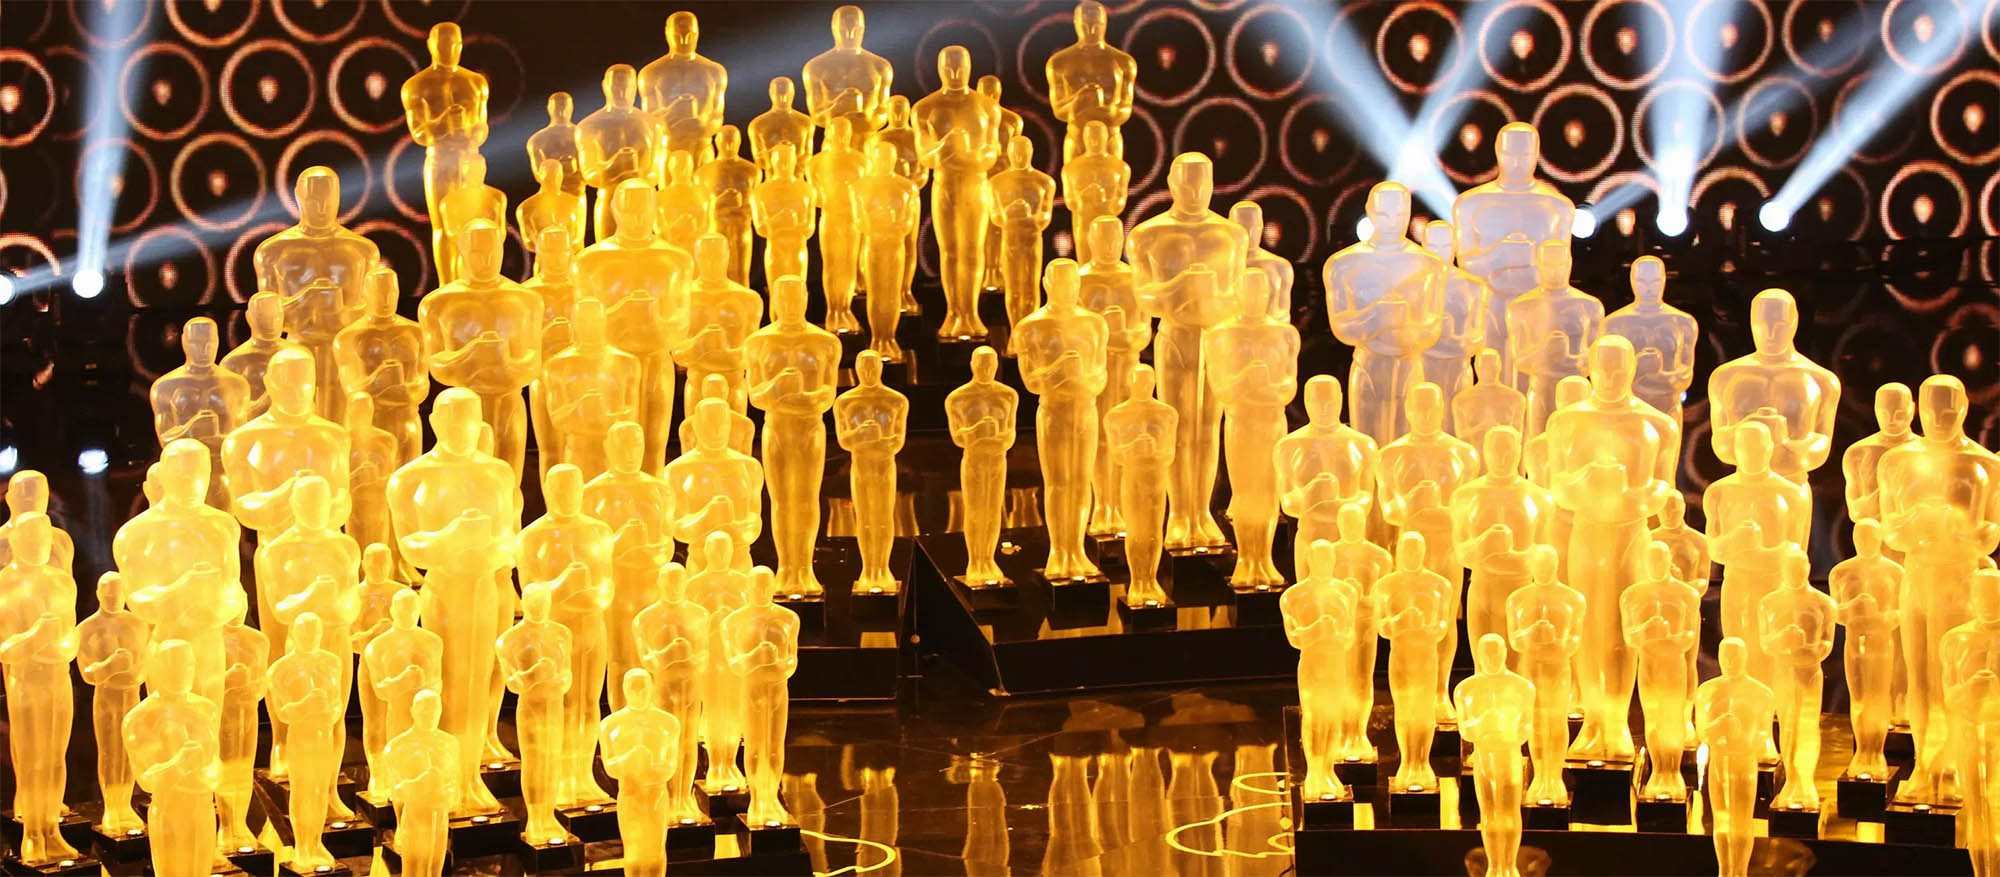 The Academy of Motion Picture Arts and Sciences has announced its new members and with 926 new people joining, its given 49% of the new membership to women and 38% to people of color (it's about time).